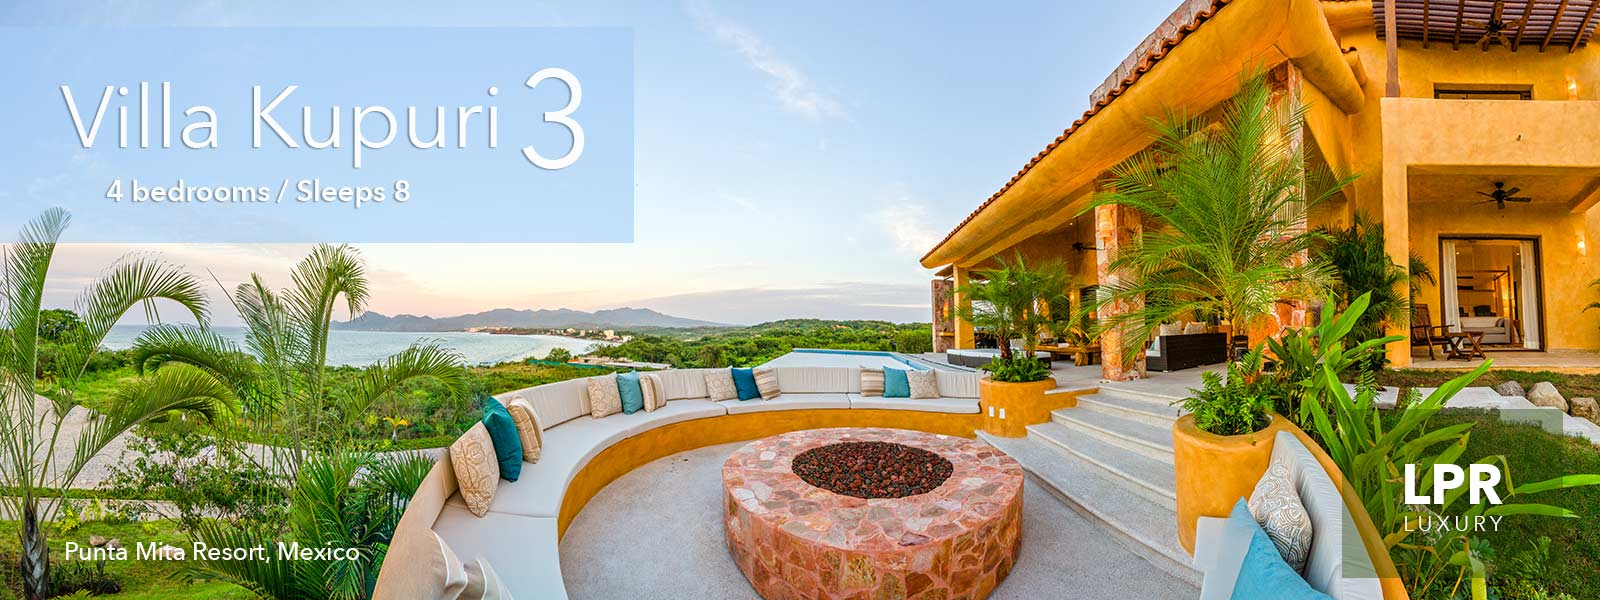 Villa Kupuri 3 - Punta Mita Resort, Mexico - Luxury vacation rentals and real estate